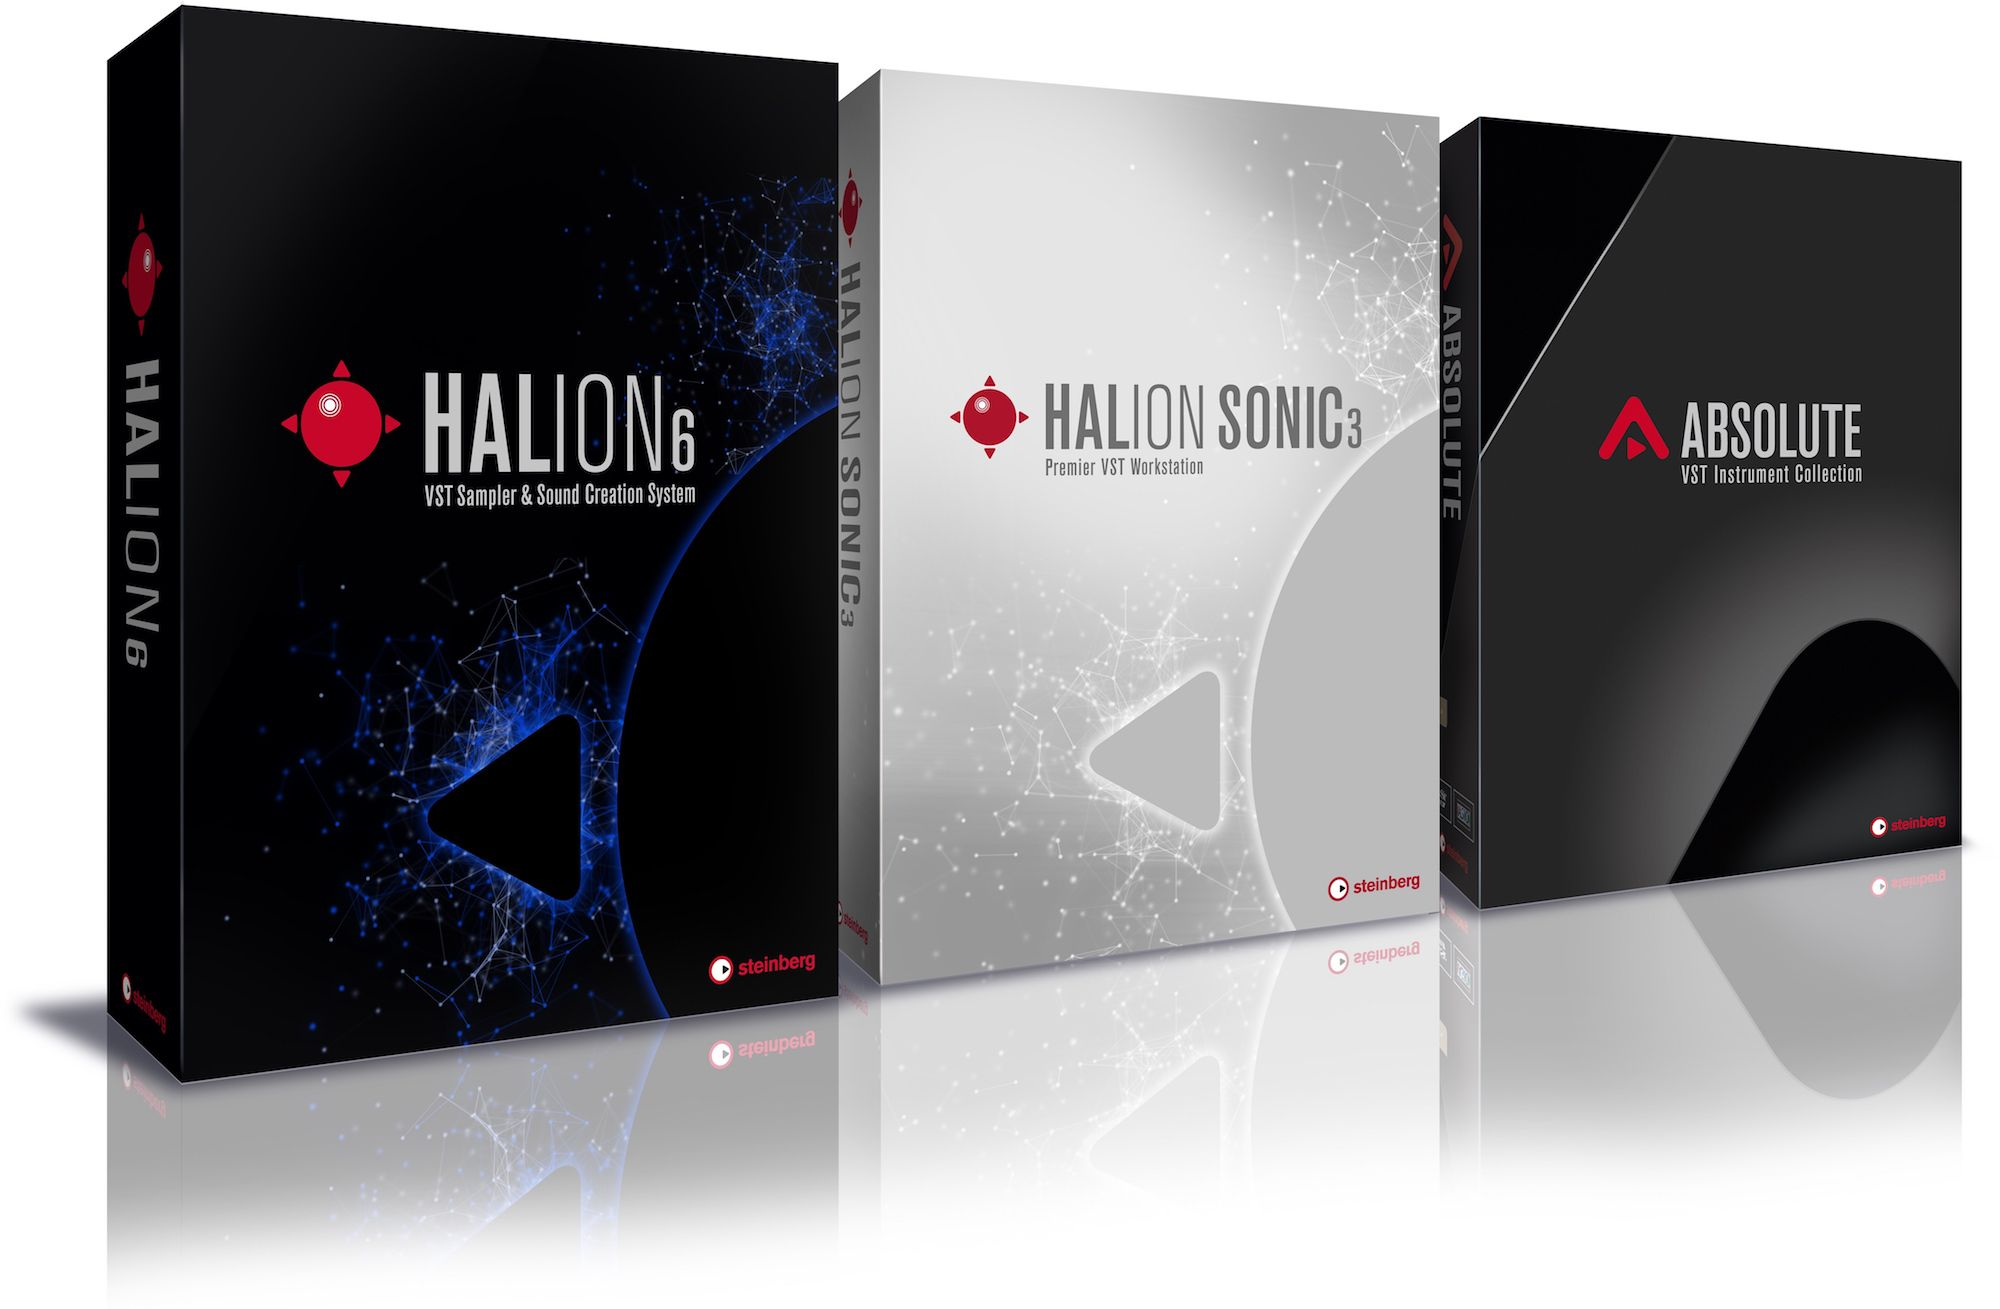 HALion 6, HALion Sonic 3, Absolute VST 3.